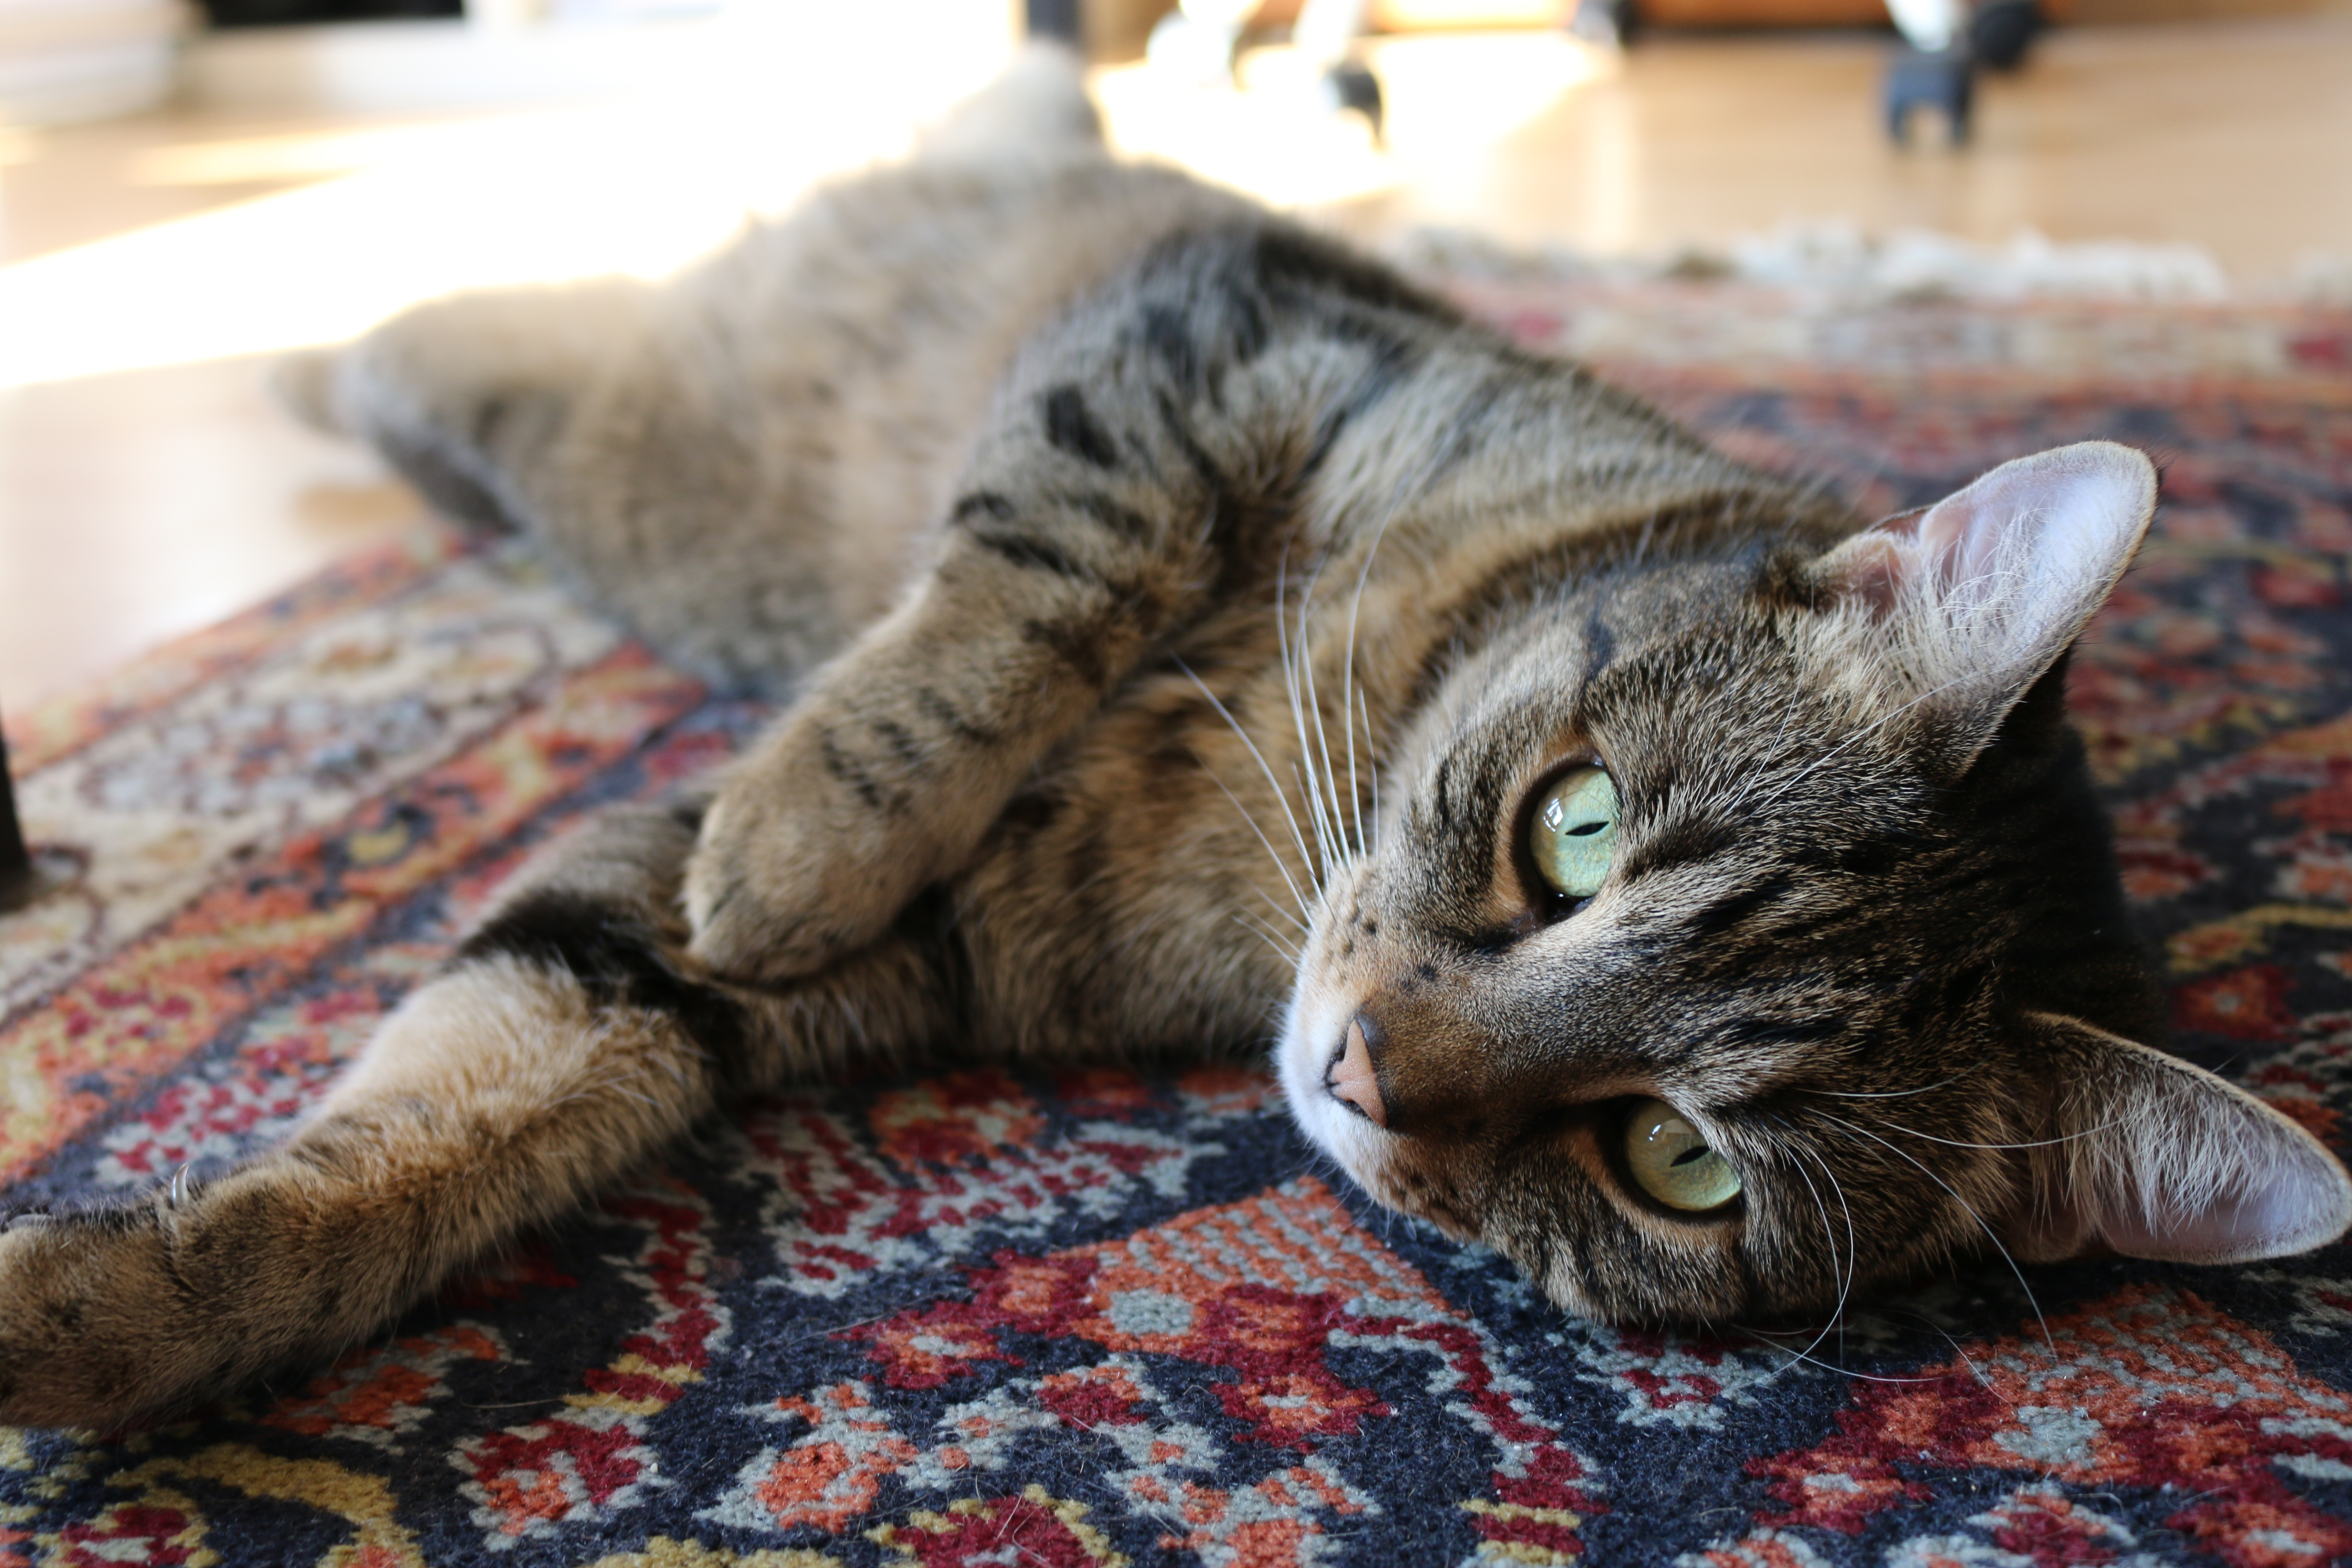 Brown Tabby Cat On Red And Blue Floral Carpet 183 Free Stock